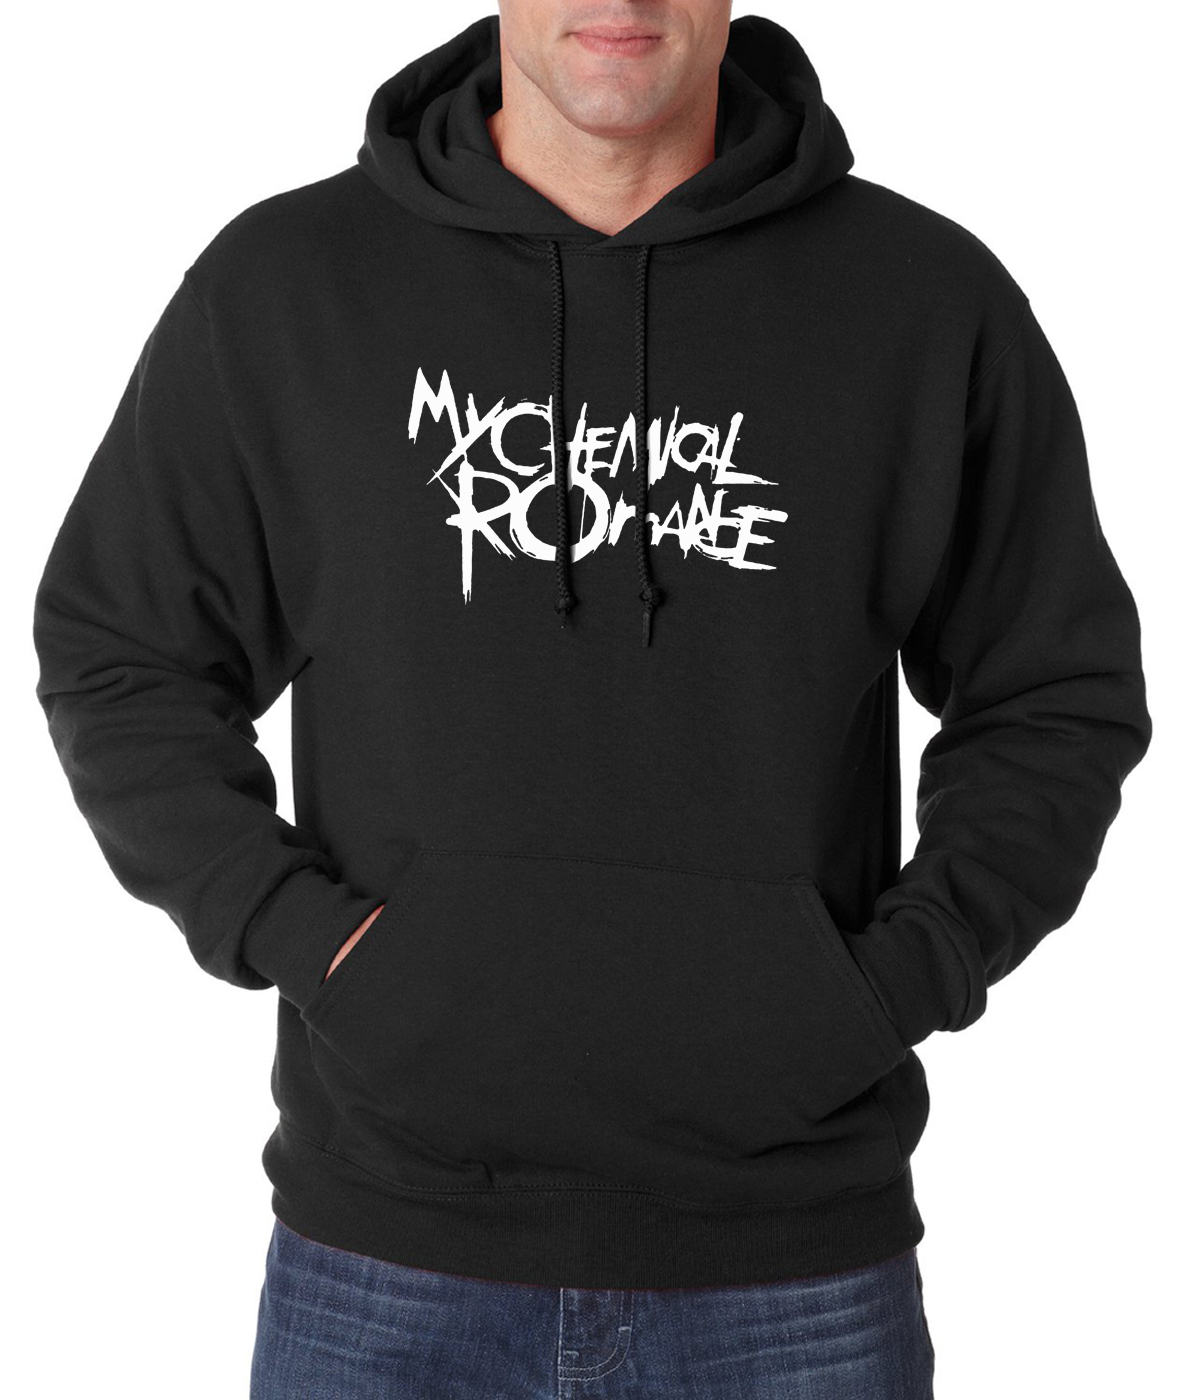 Adult Hoodie men 2016 autumn winter new My Chemical Romance Letters Print men hoodies Adult font